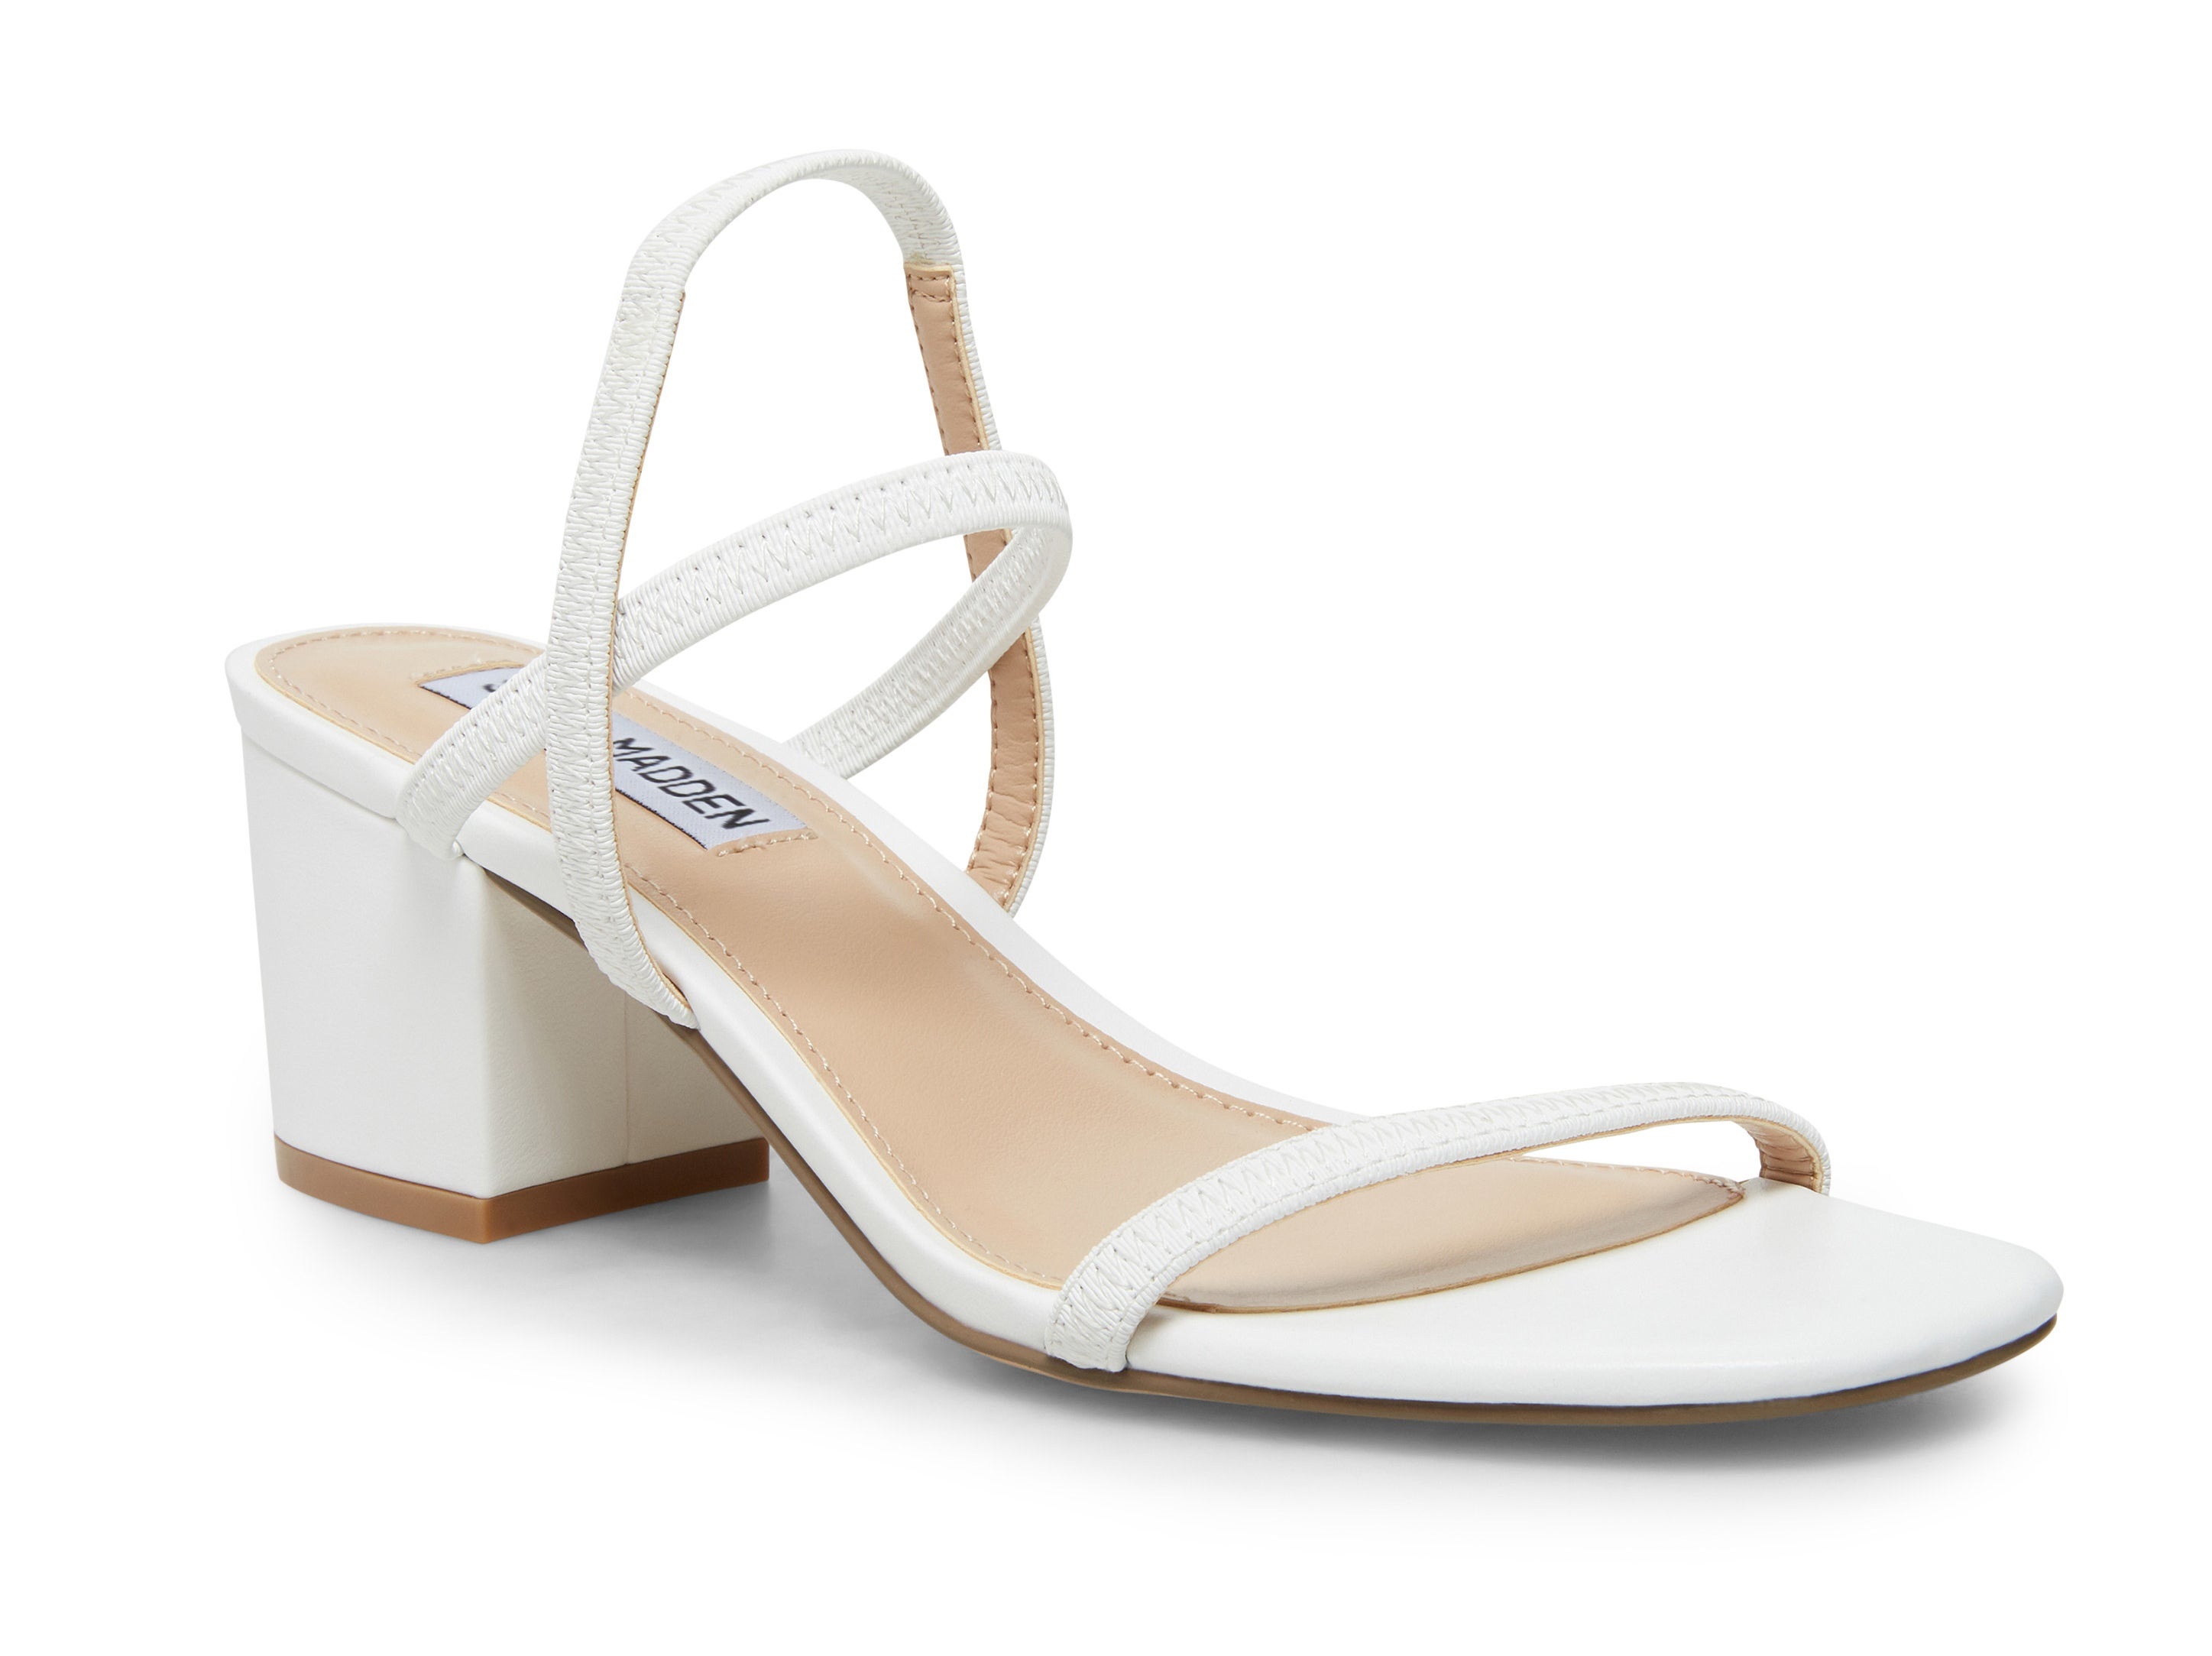 A white sandal with a block heel